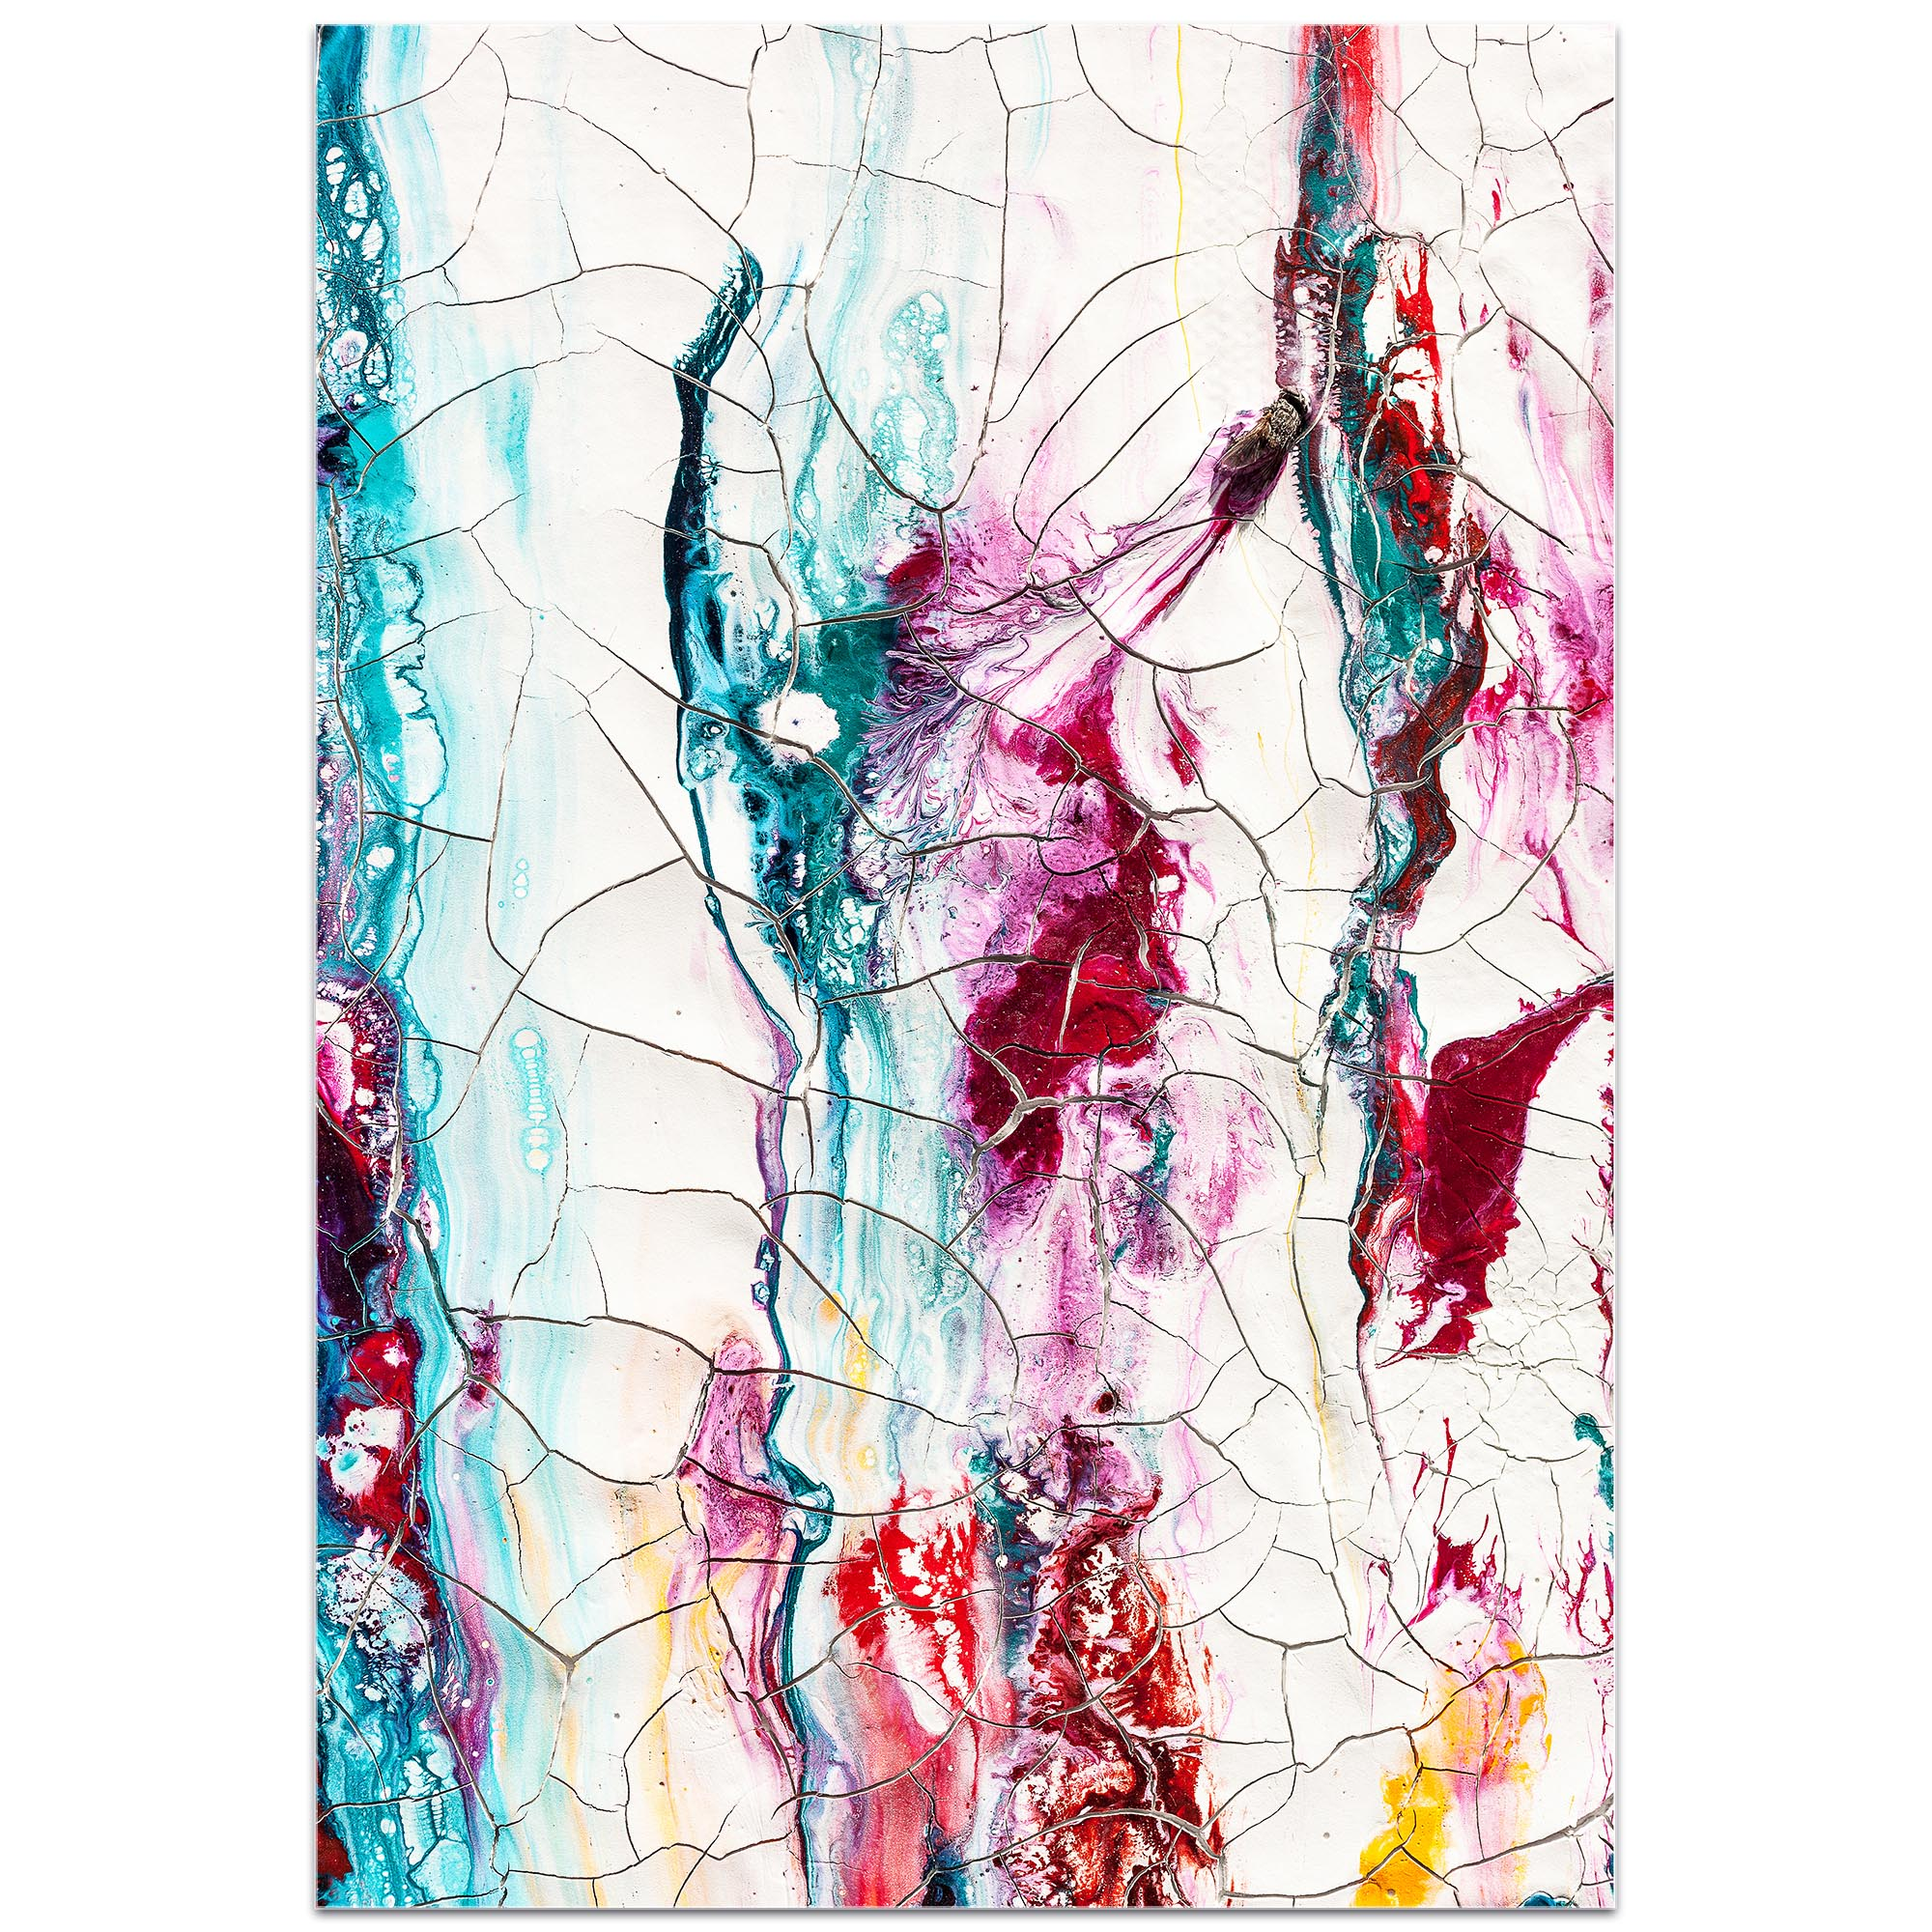 Abstract Wall Art 'Collateral Damage 3' - Colorful Urban Decor on Metal or Plexiglass - Image 2